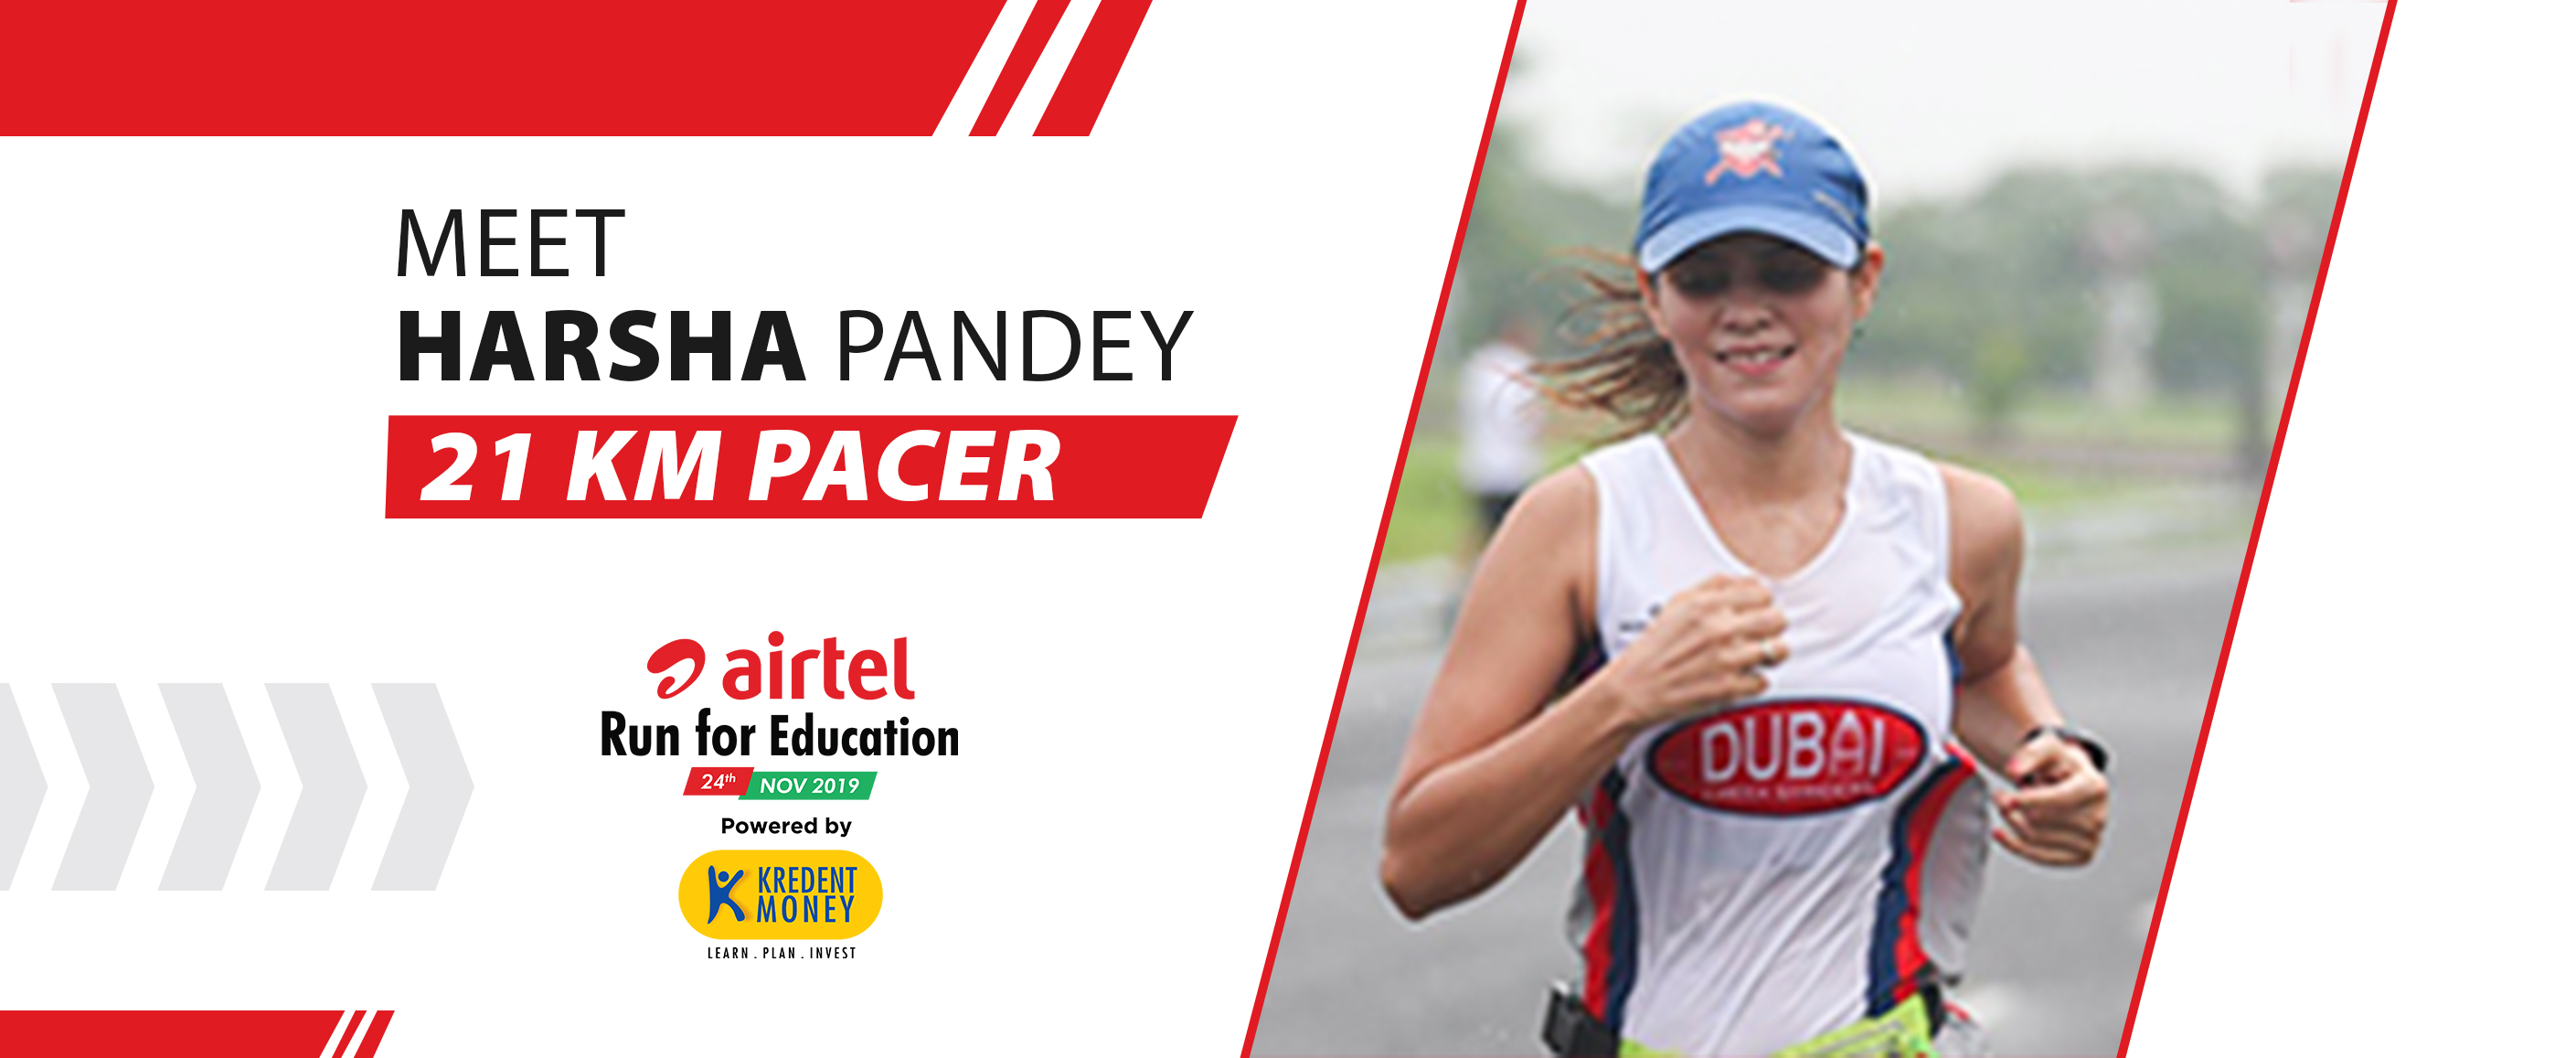 Harsha Pandey Pacer